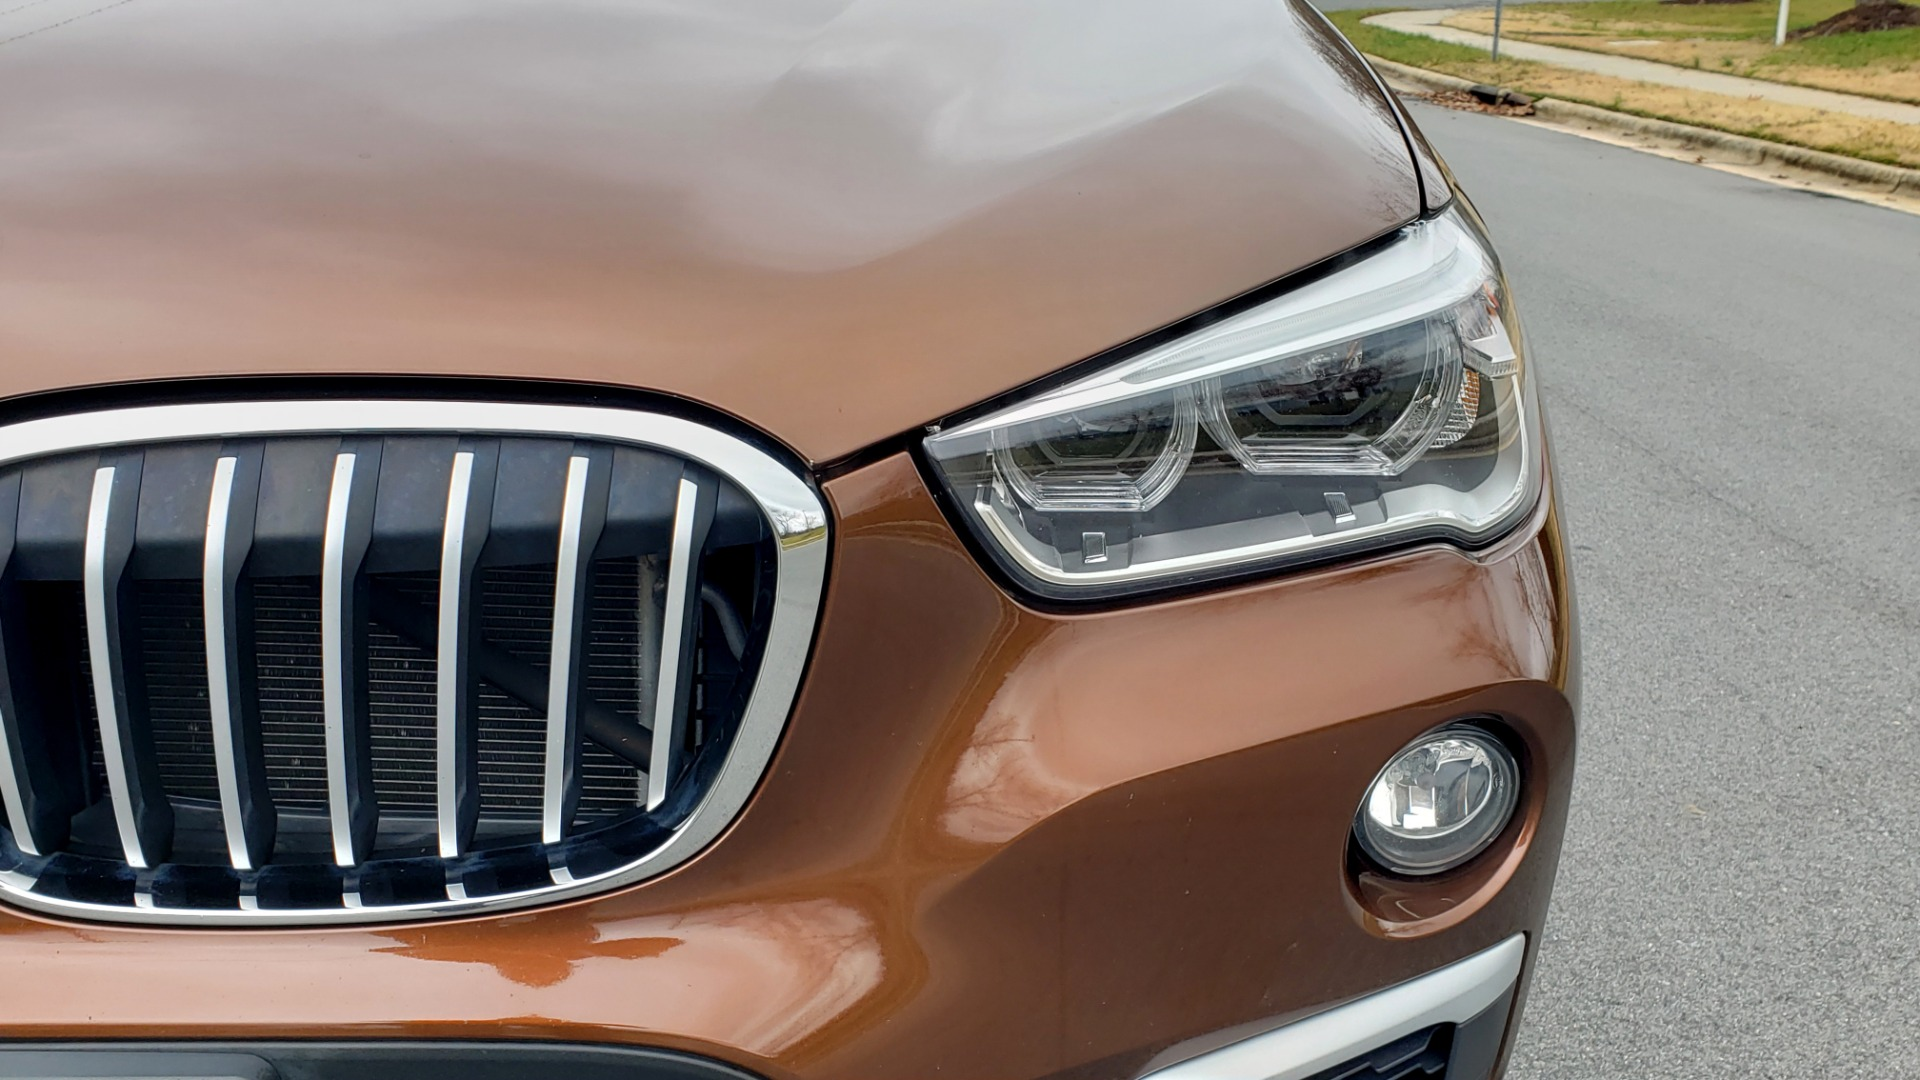 Used 2017 BMW X1 XDRIVE28I / PREM / TECH / DRVR ASST / COLD WTHR / REARVIEW for sale Sold at Formula Imports in Charlotte NC 28227 21